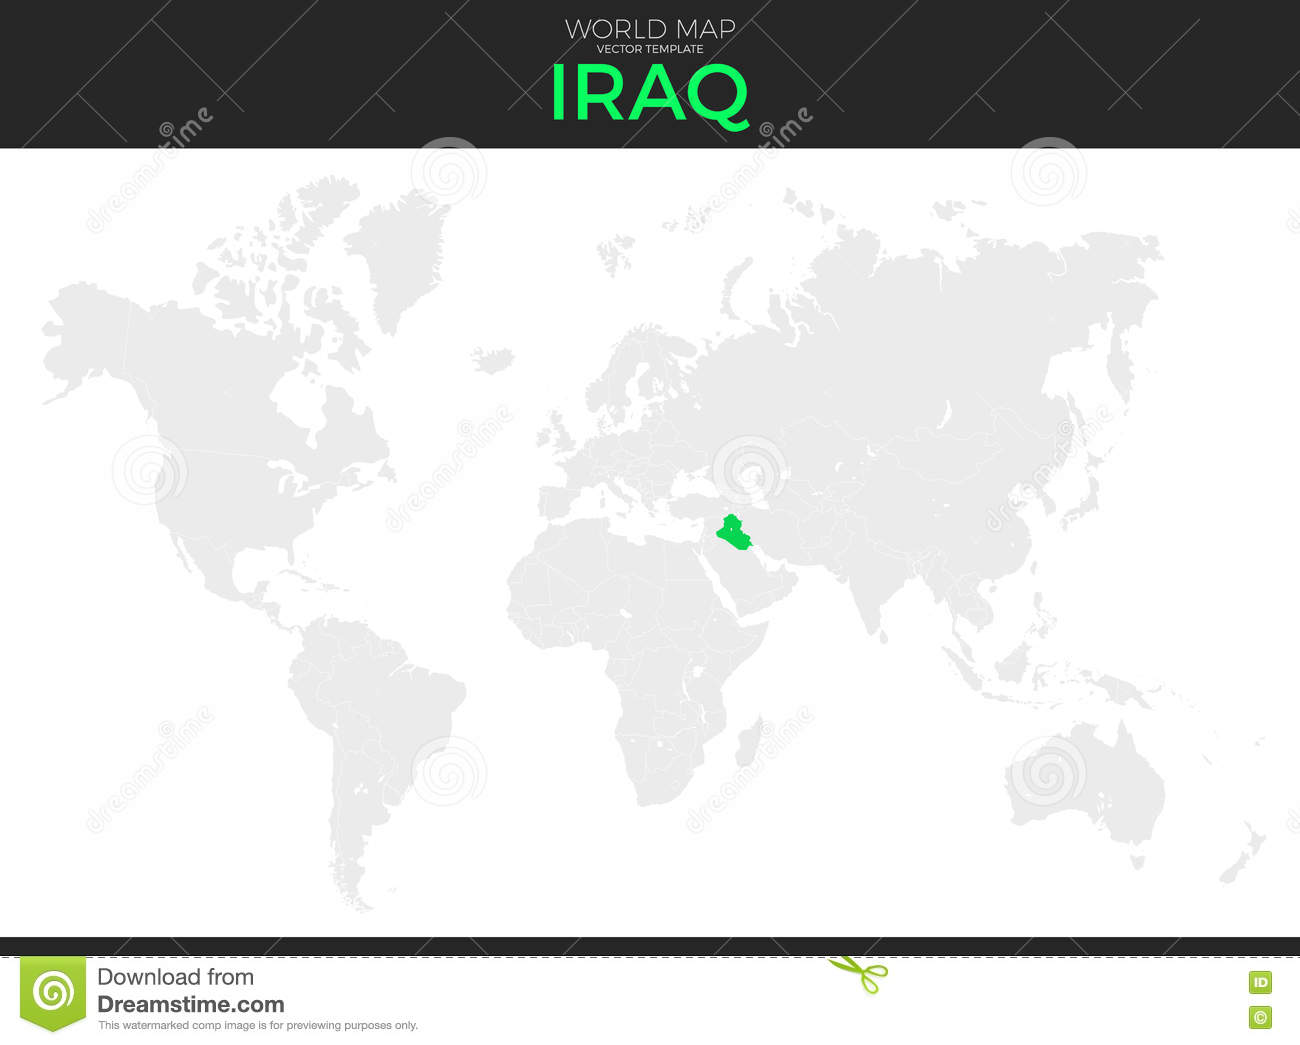 Where Is Iraq Located On The World Map.Republic Of Iraq Location Map Stock Vector Illustration Of Detail